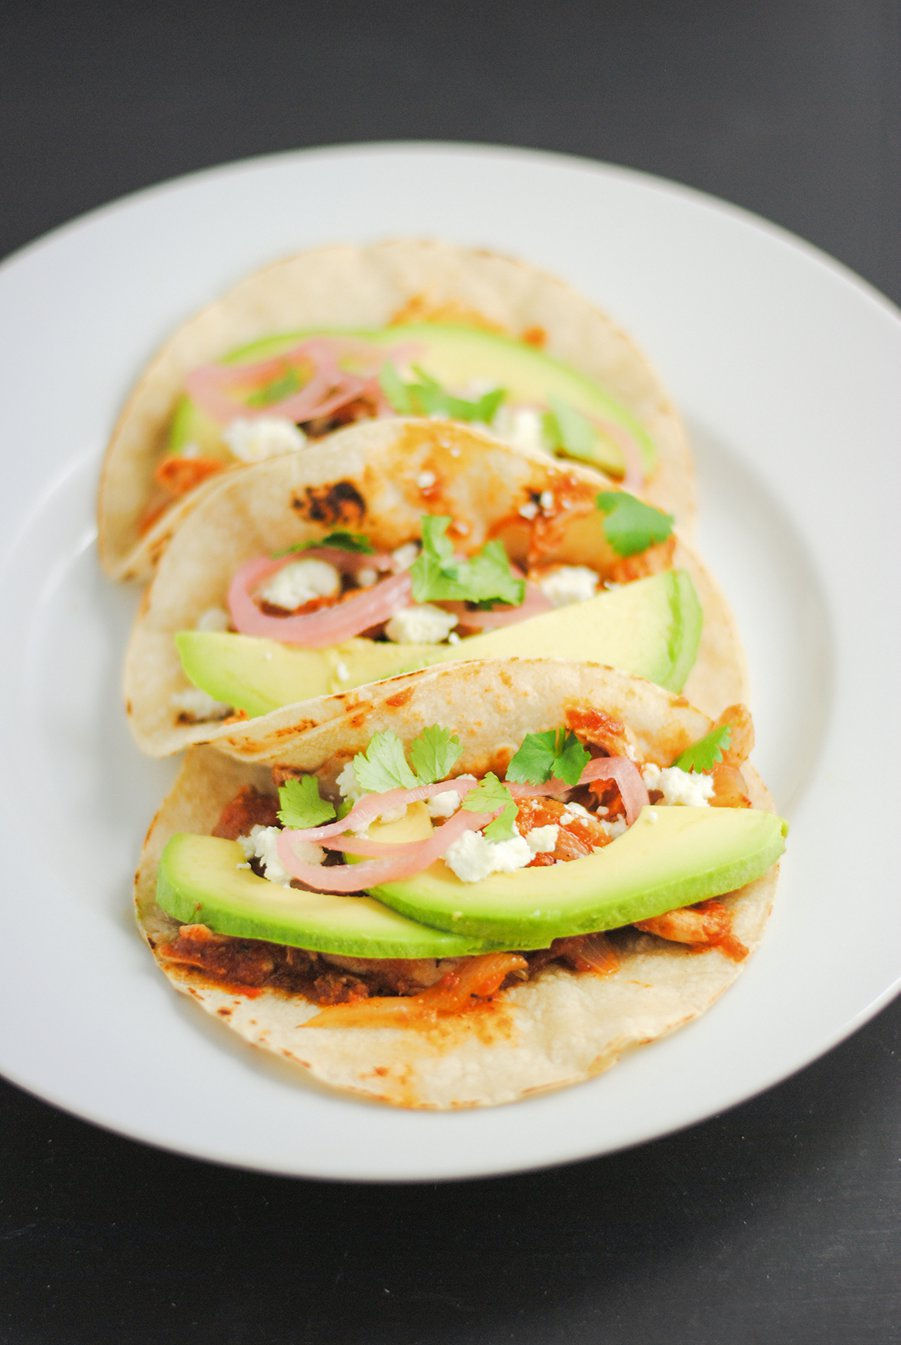 Chicken tacos with all the trimmigs